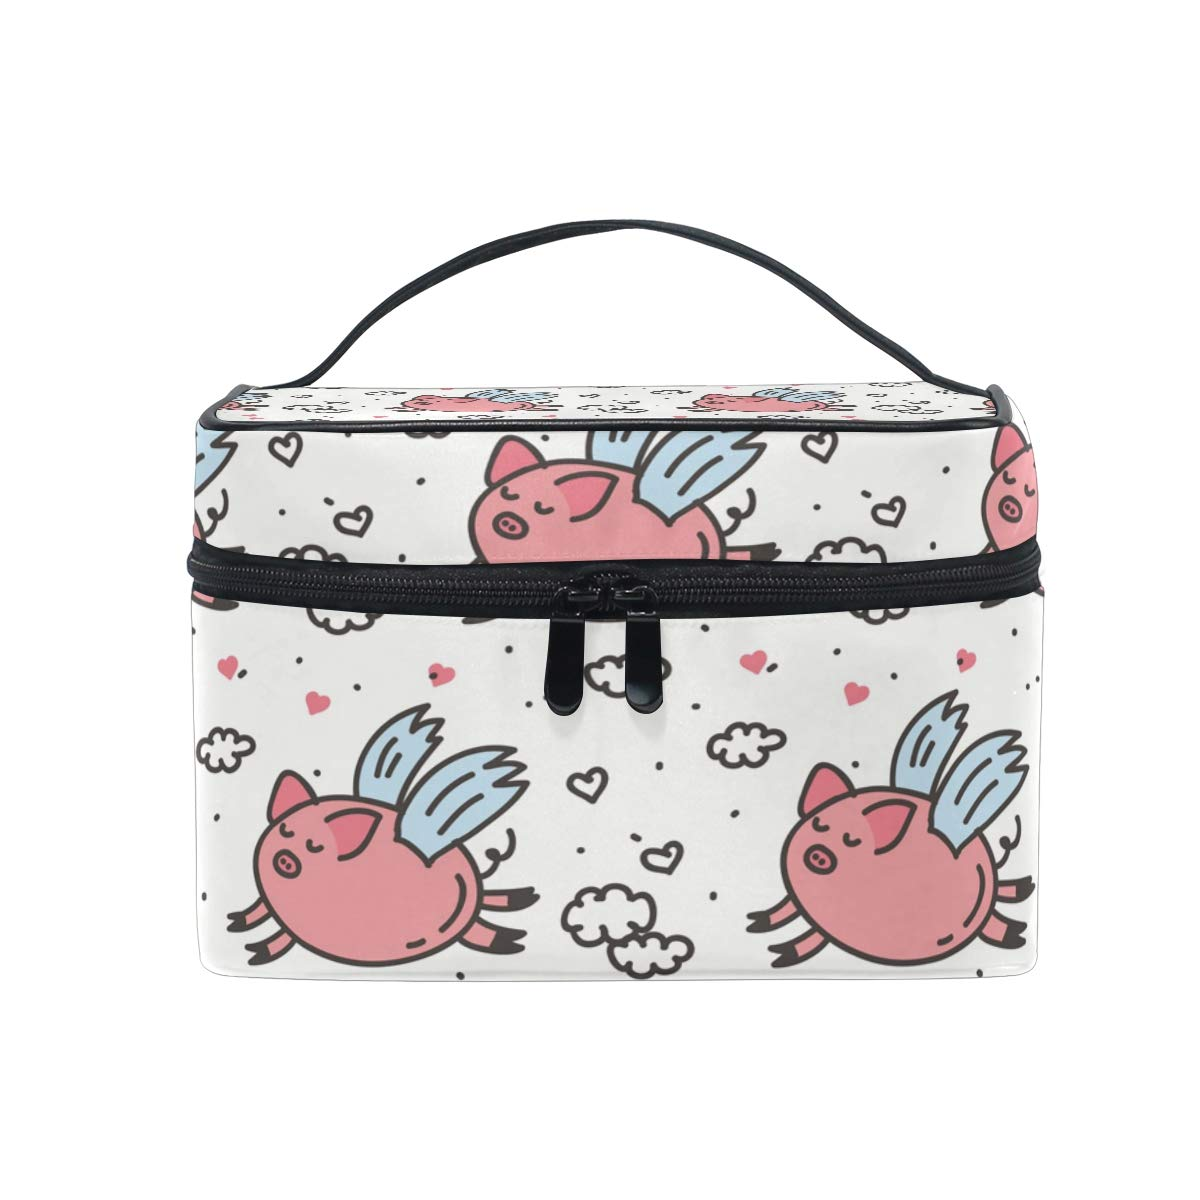 """Blueangle Pink Fly Pig Makeup Bag Portable Travel Cosmetic Bag Organizer Multifunction Case with Double Zipper Toiletry Bag for Woman (9""""x6.2""""x6.5"""")"""